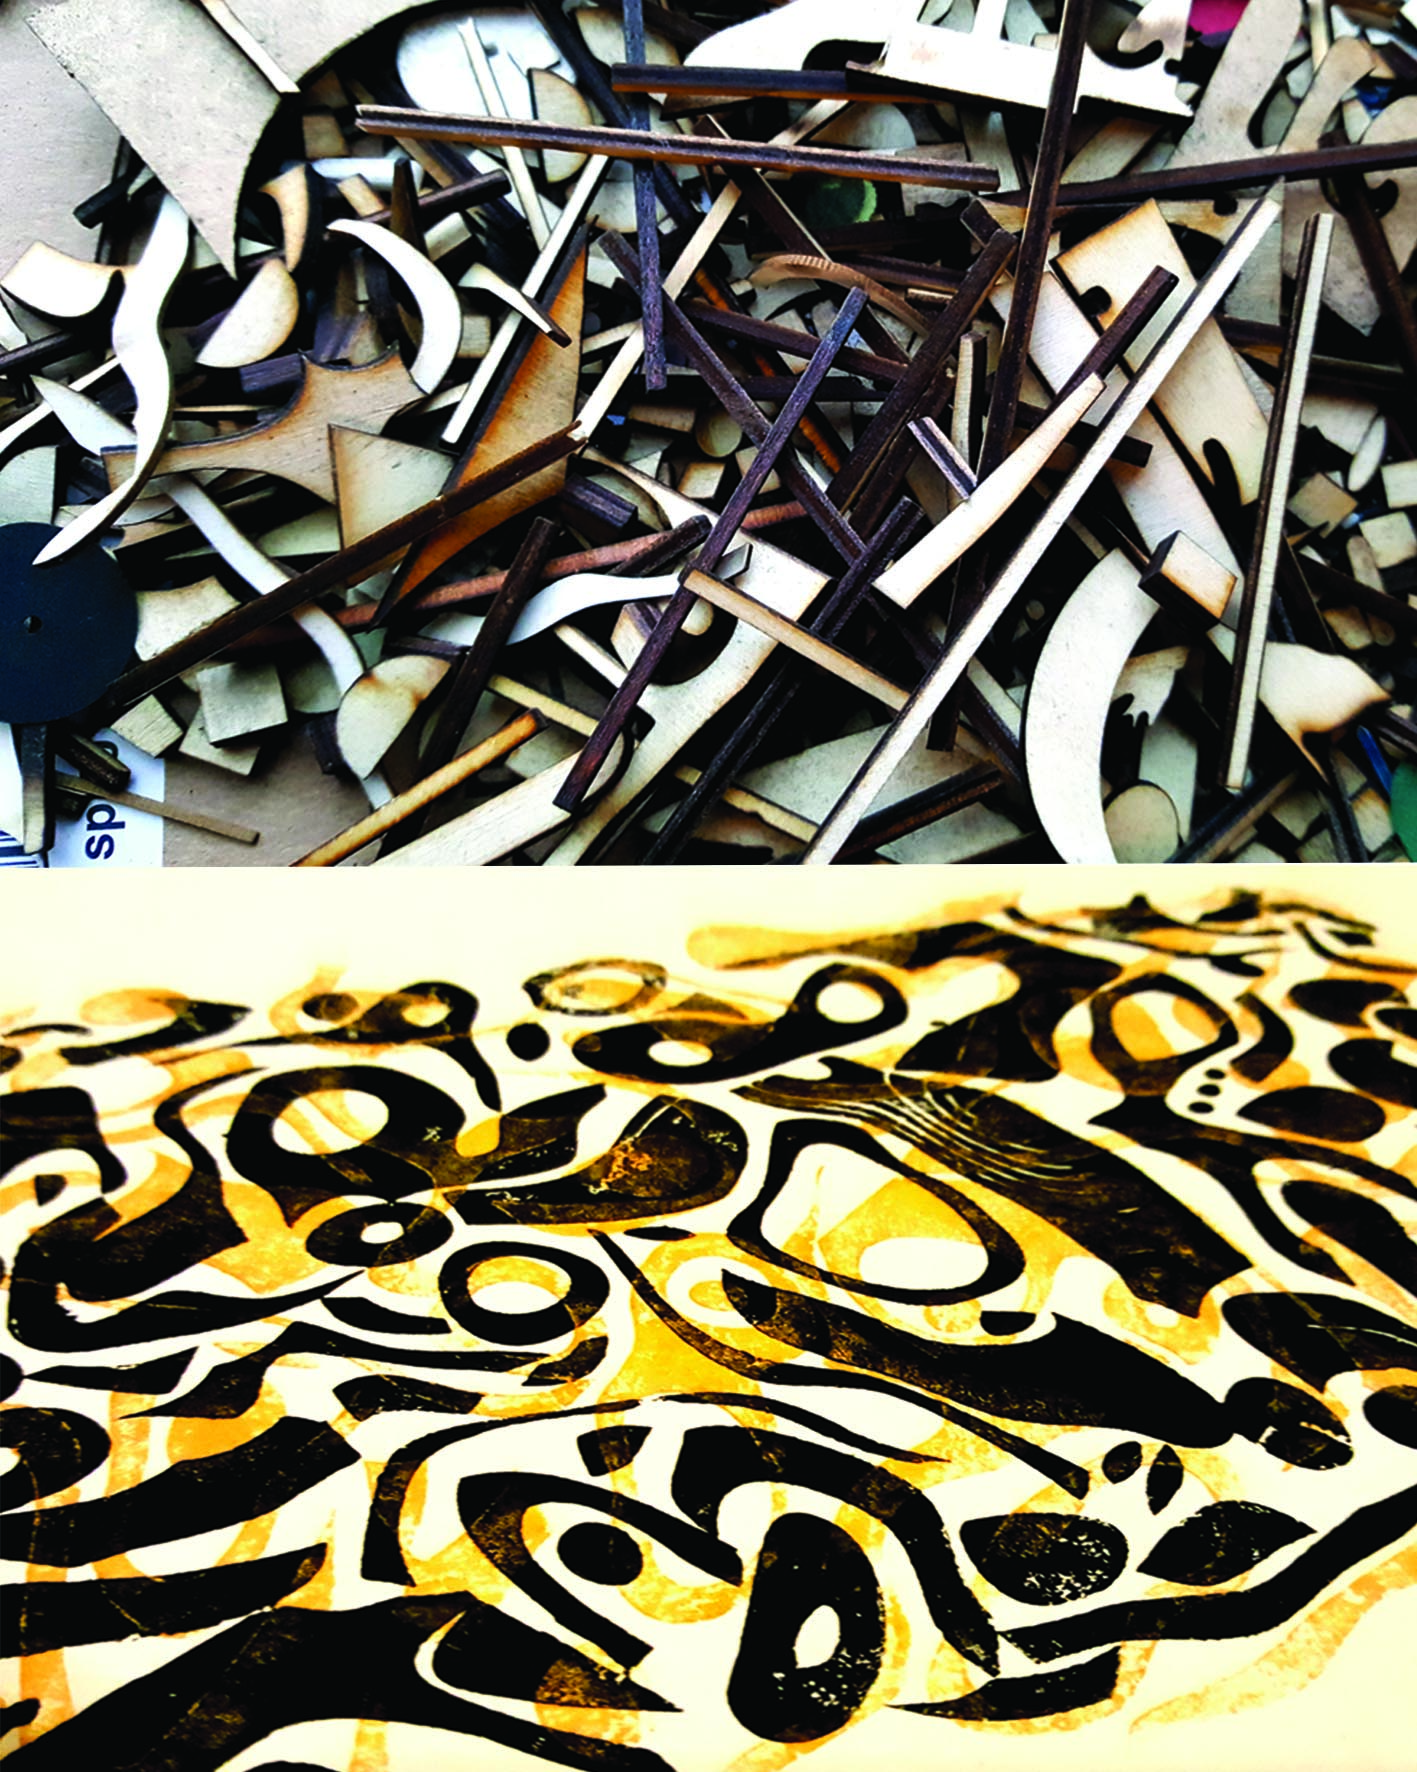 Cass Art: Relief Printmaking: Laser-cut and found parts